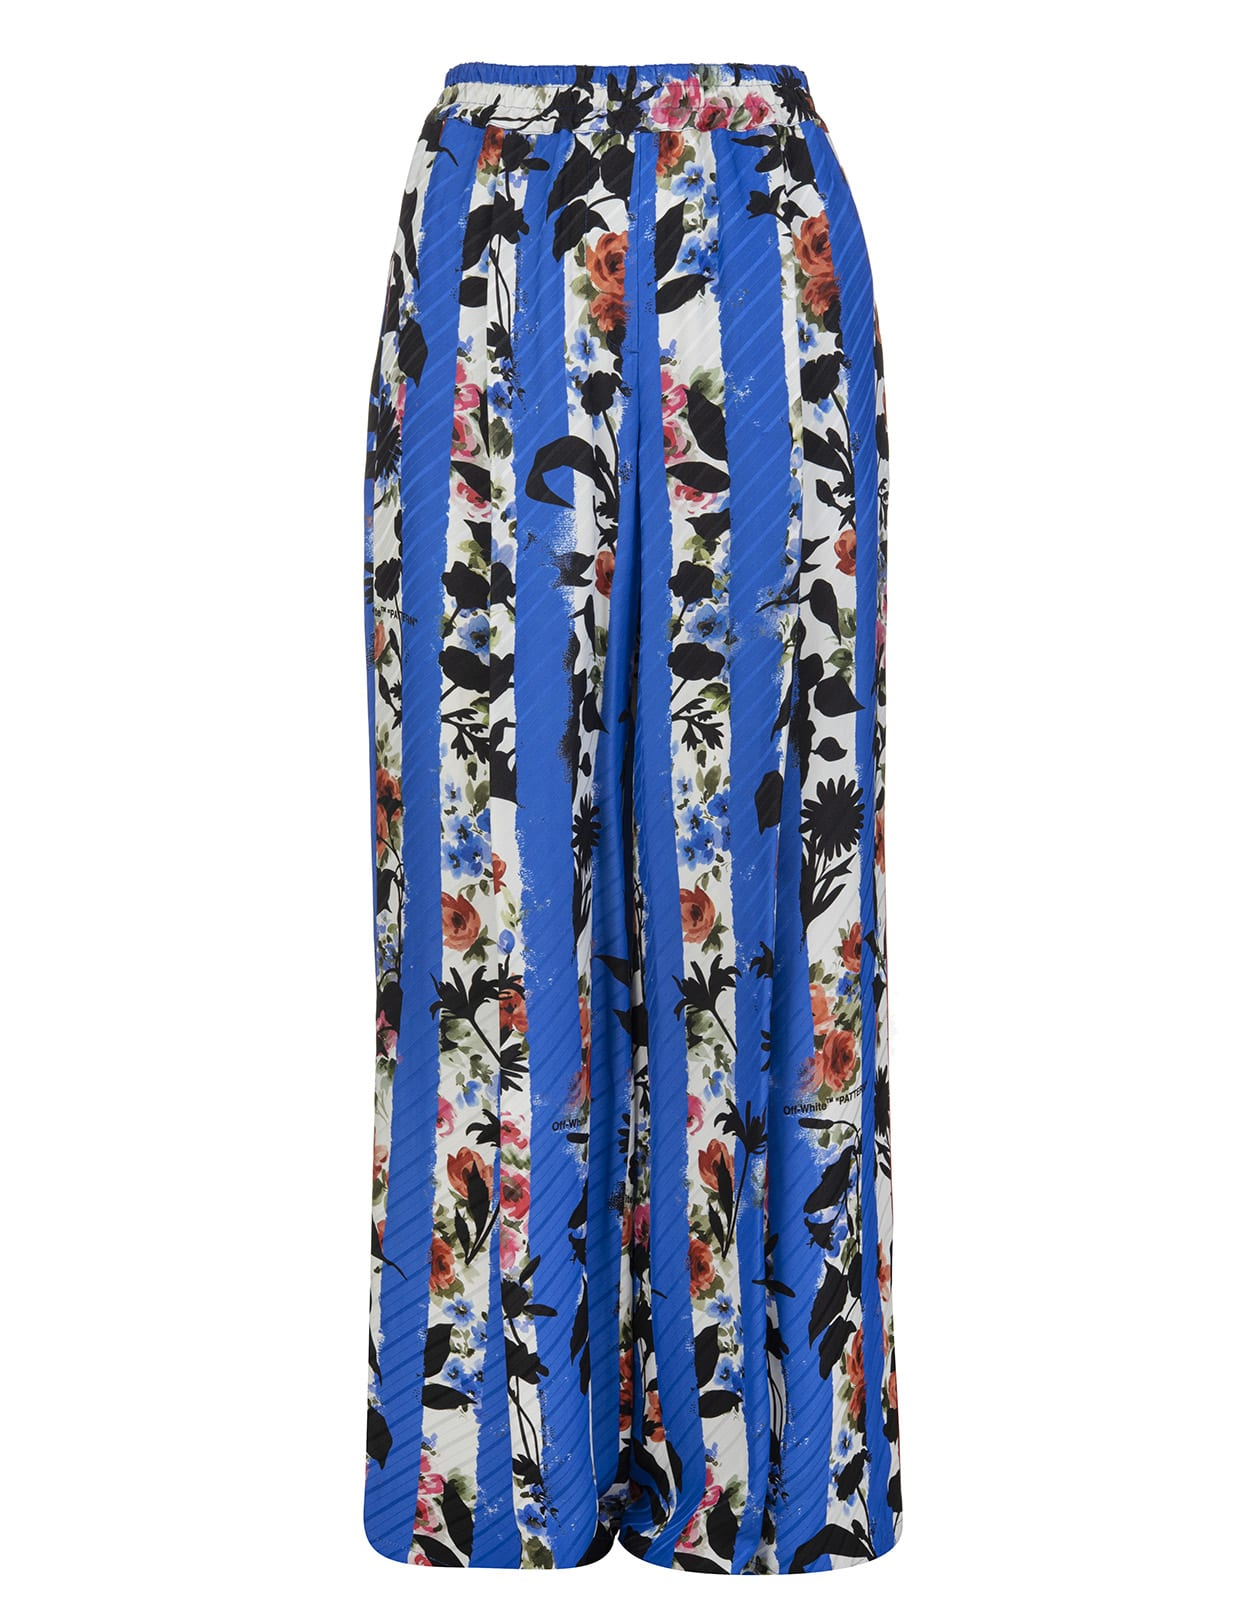 Off-White Clothing WOMAN FLORAL STRIPED BLUE PALAZZO TROUSERS